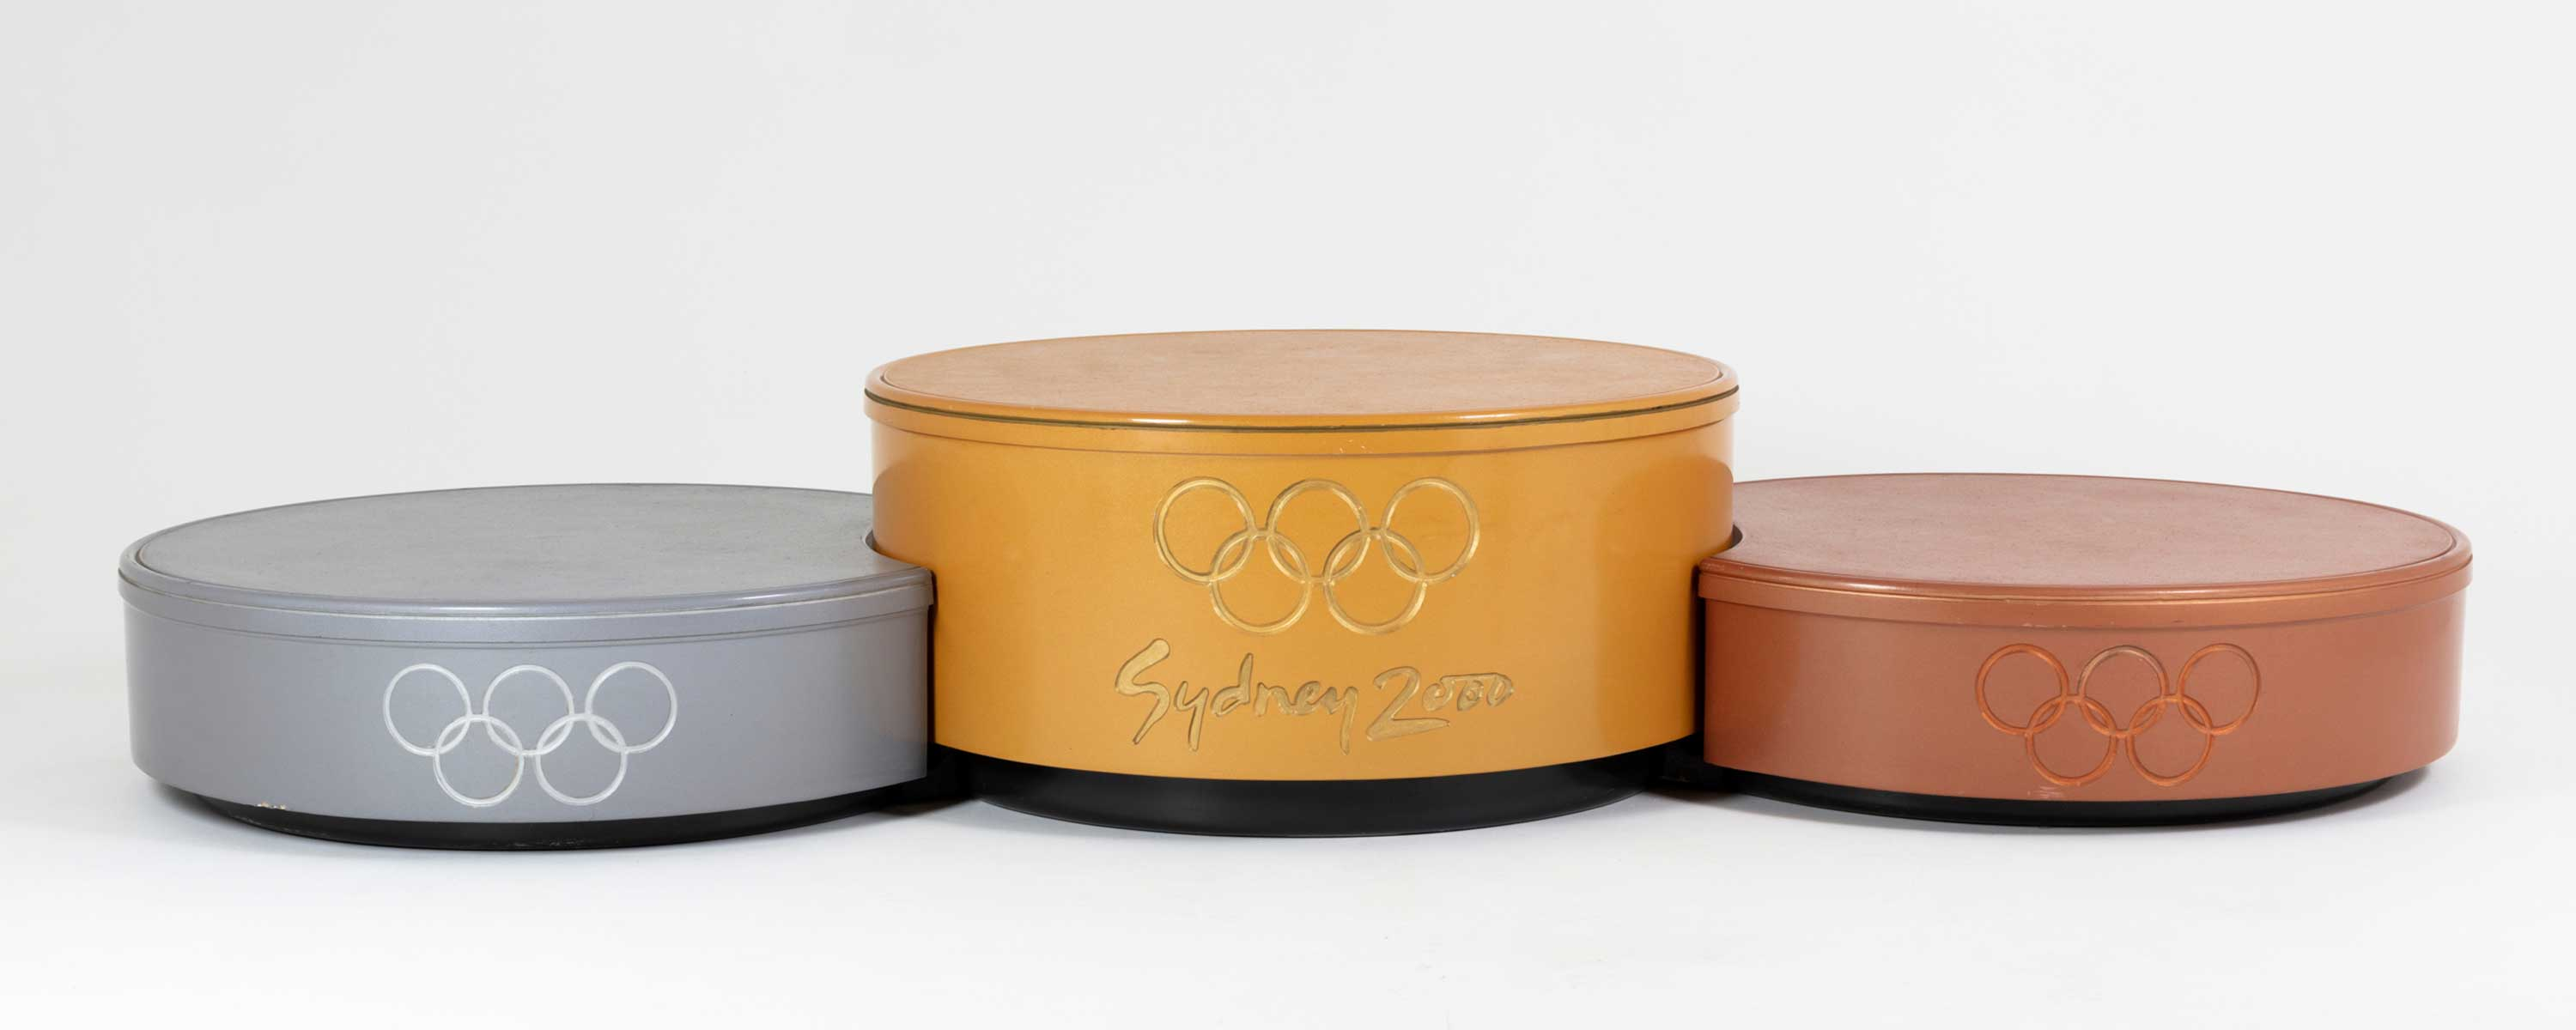 Sydney 2000 Olympic Games 20 Year Anniversary, podiums, Museums Discovery Centre Collection